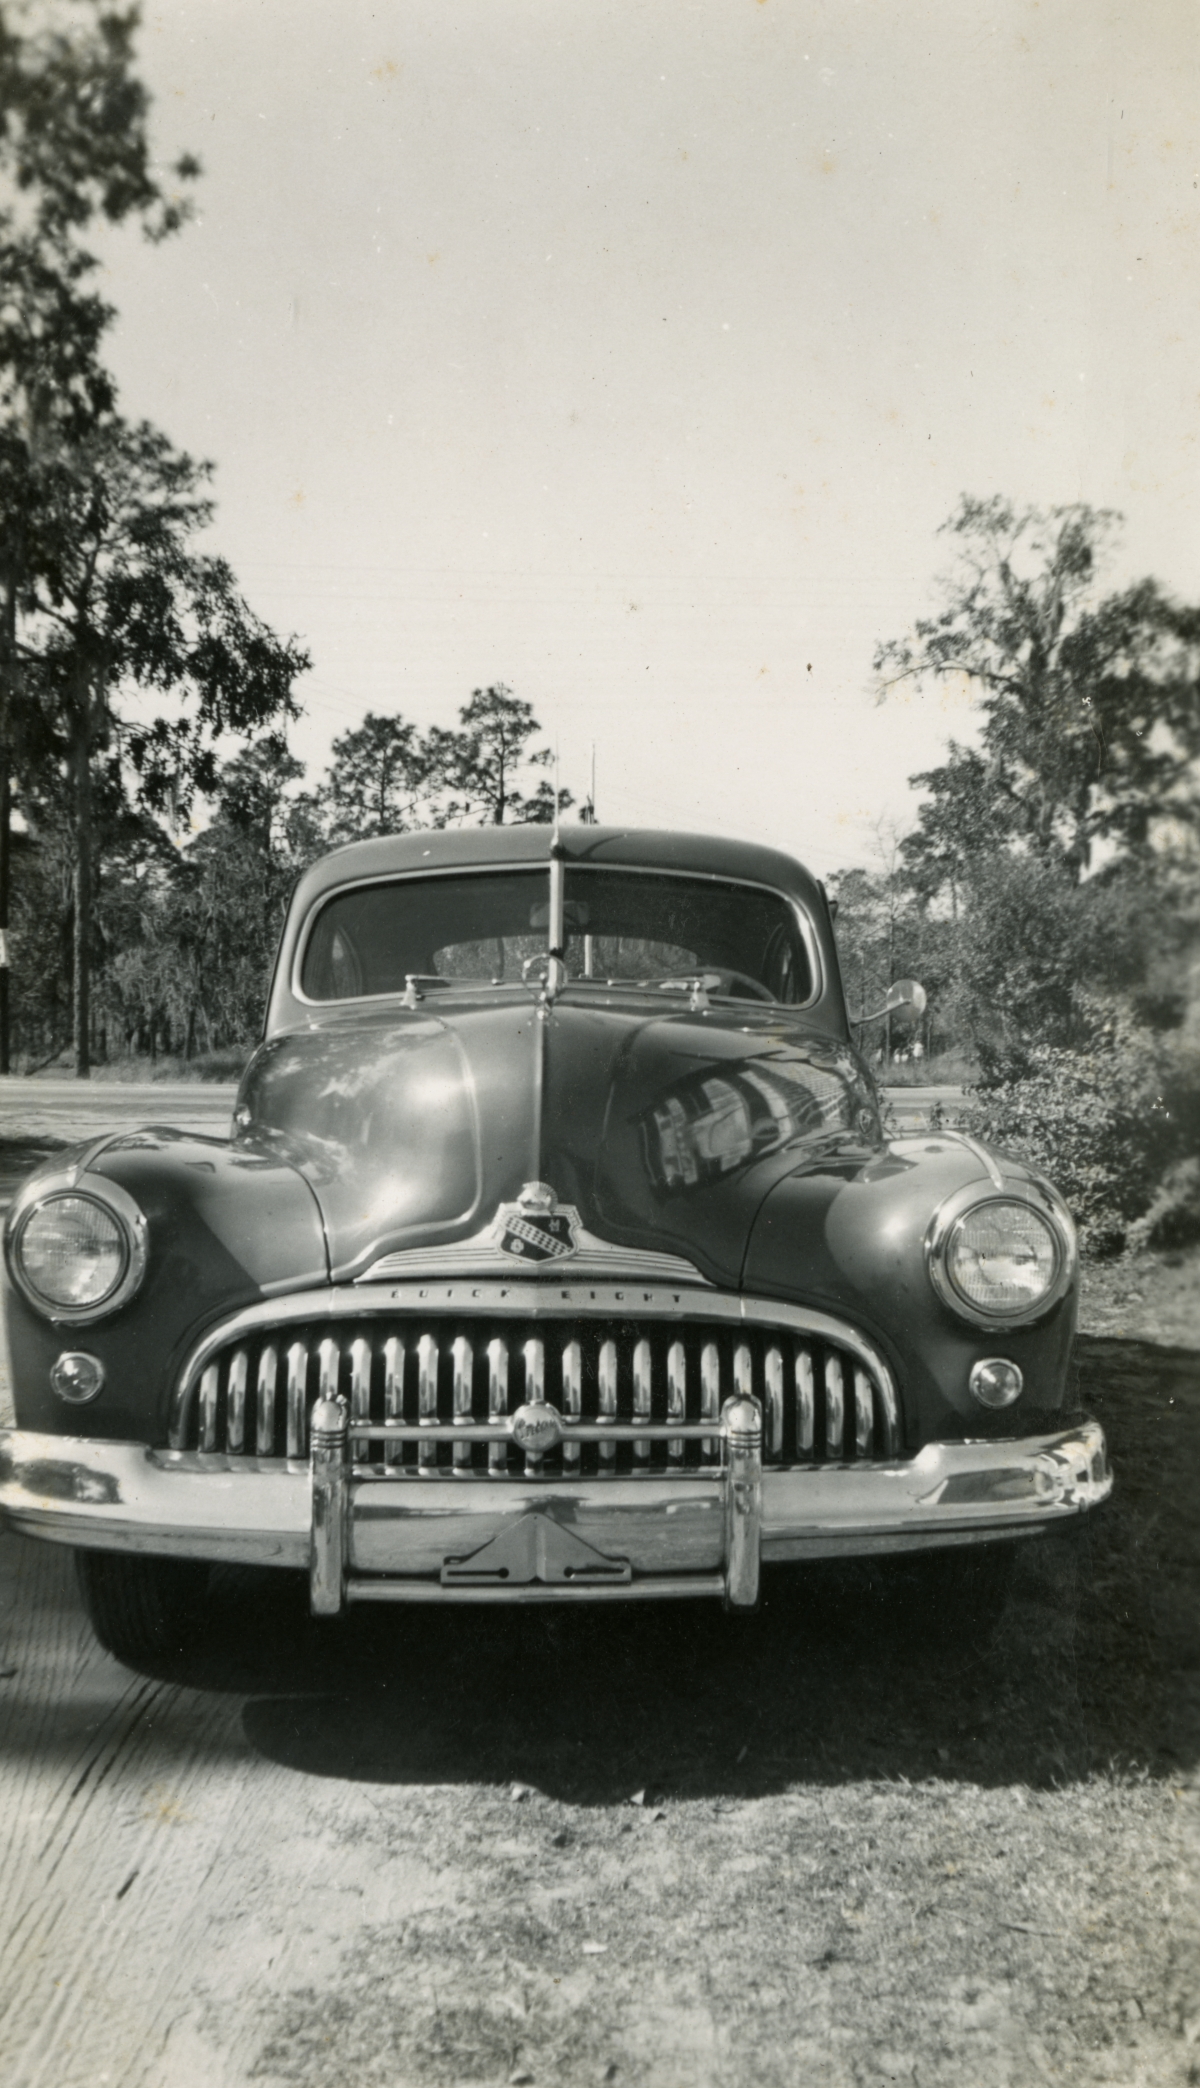 Front of 1947 Buick eight special sedanette shown during Central Florida vacation of the Hall family from Michigan.